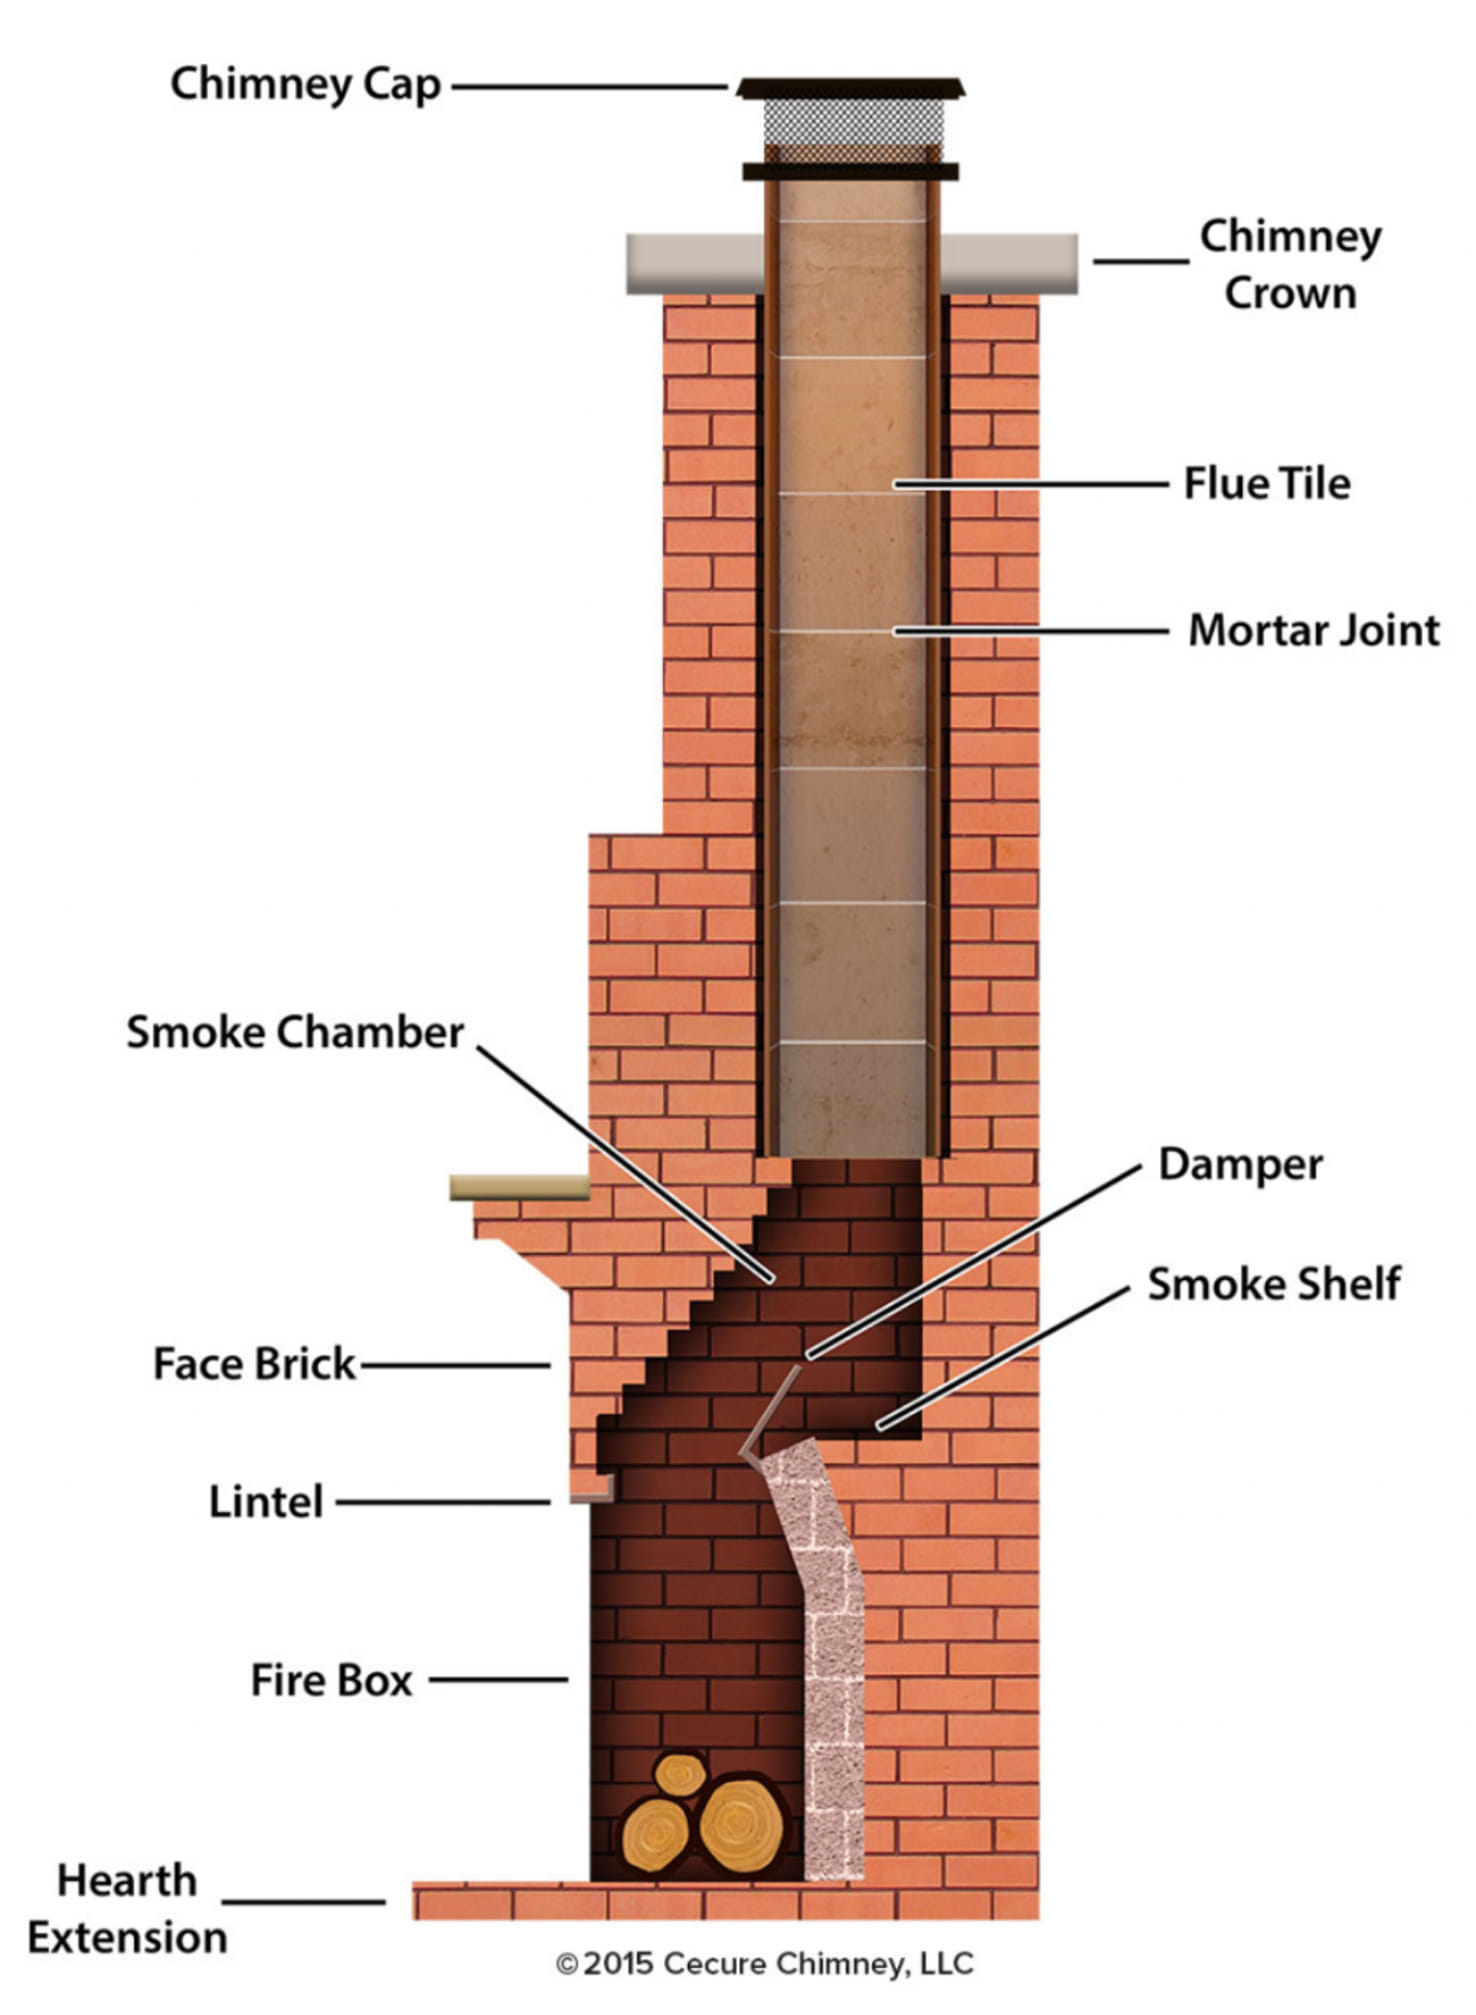 Inner workings of a chimney. Cannot shoot arrow straight up.